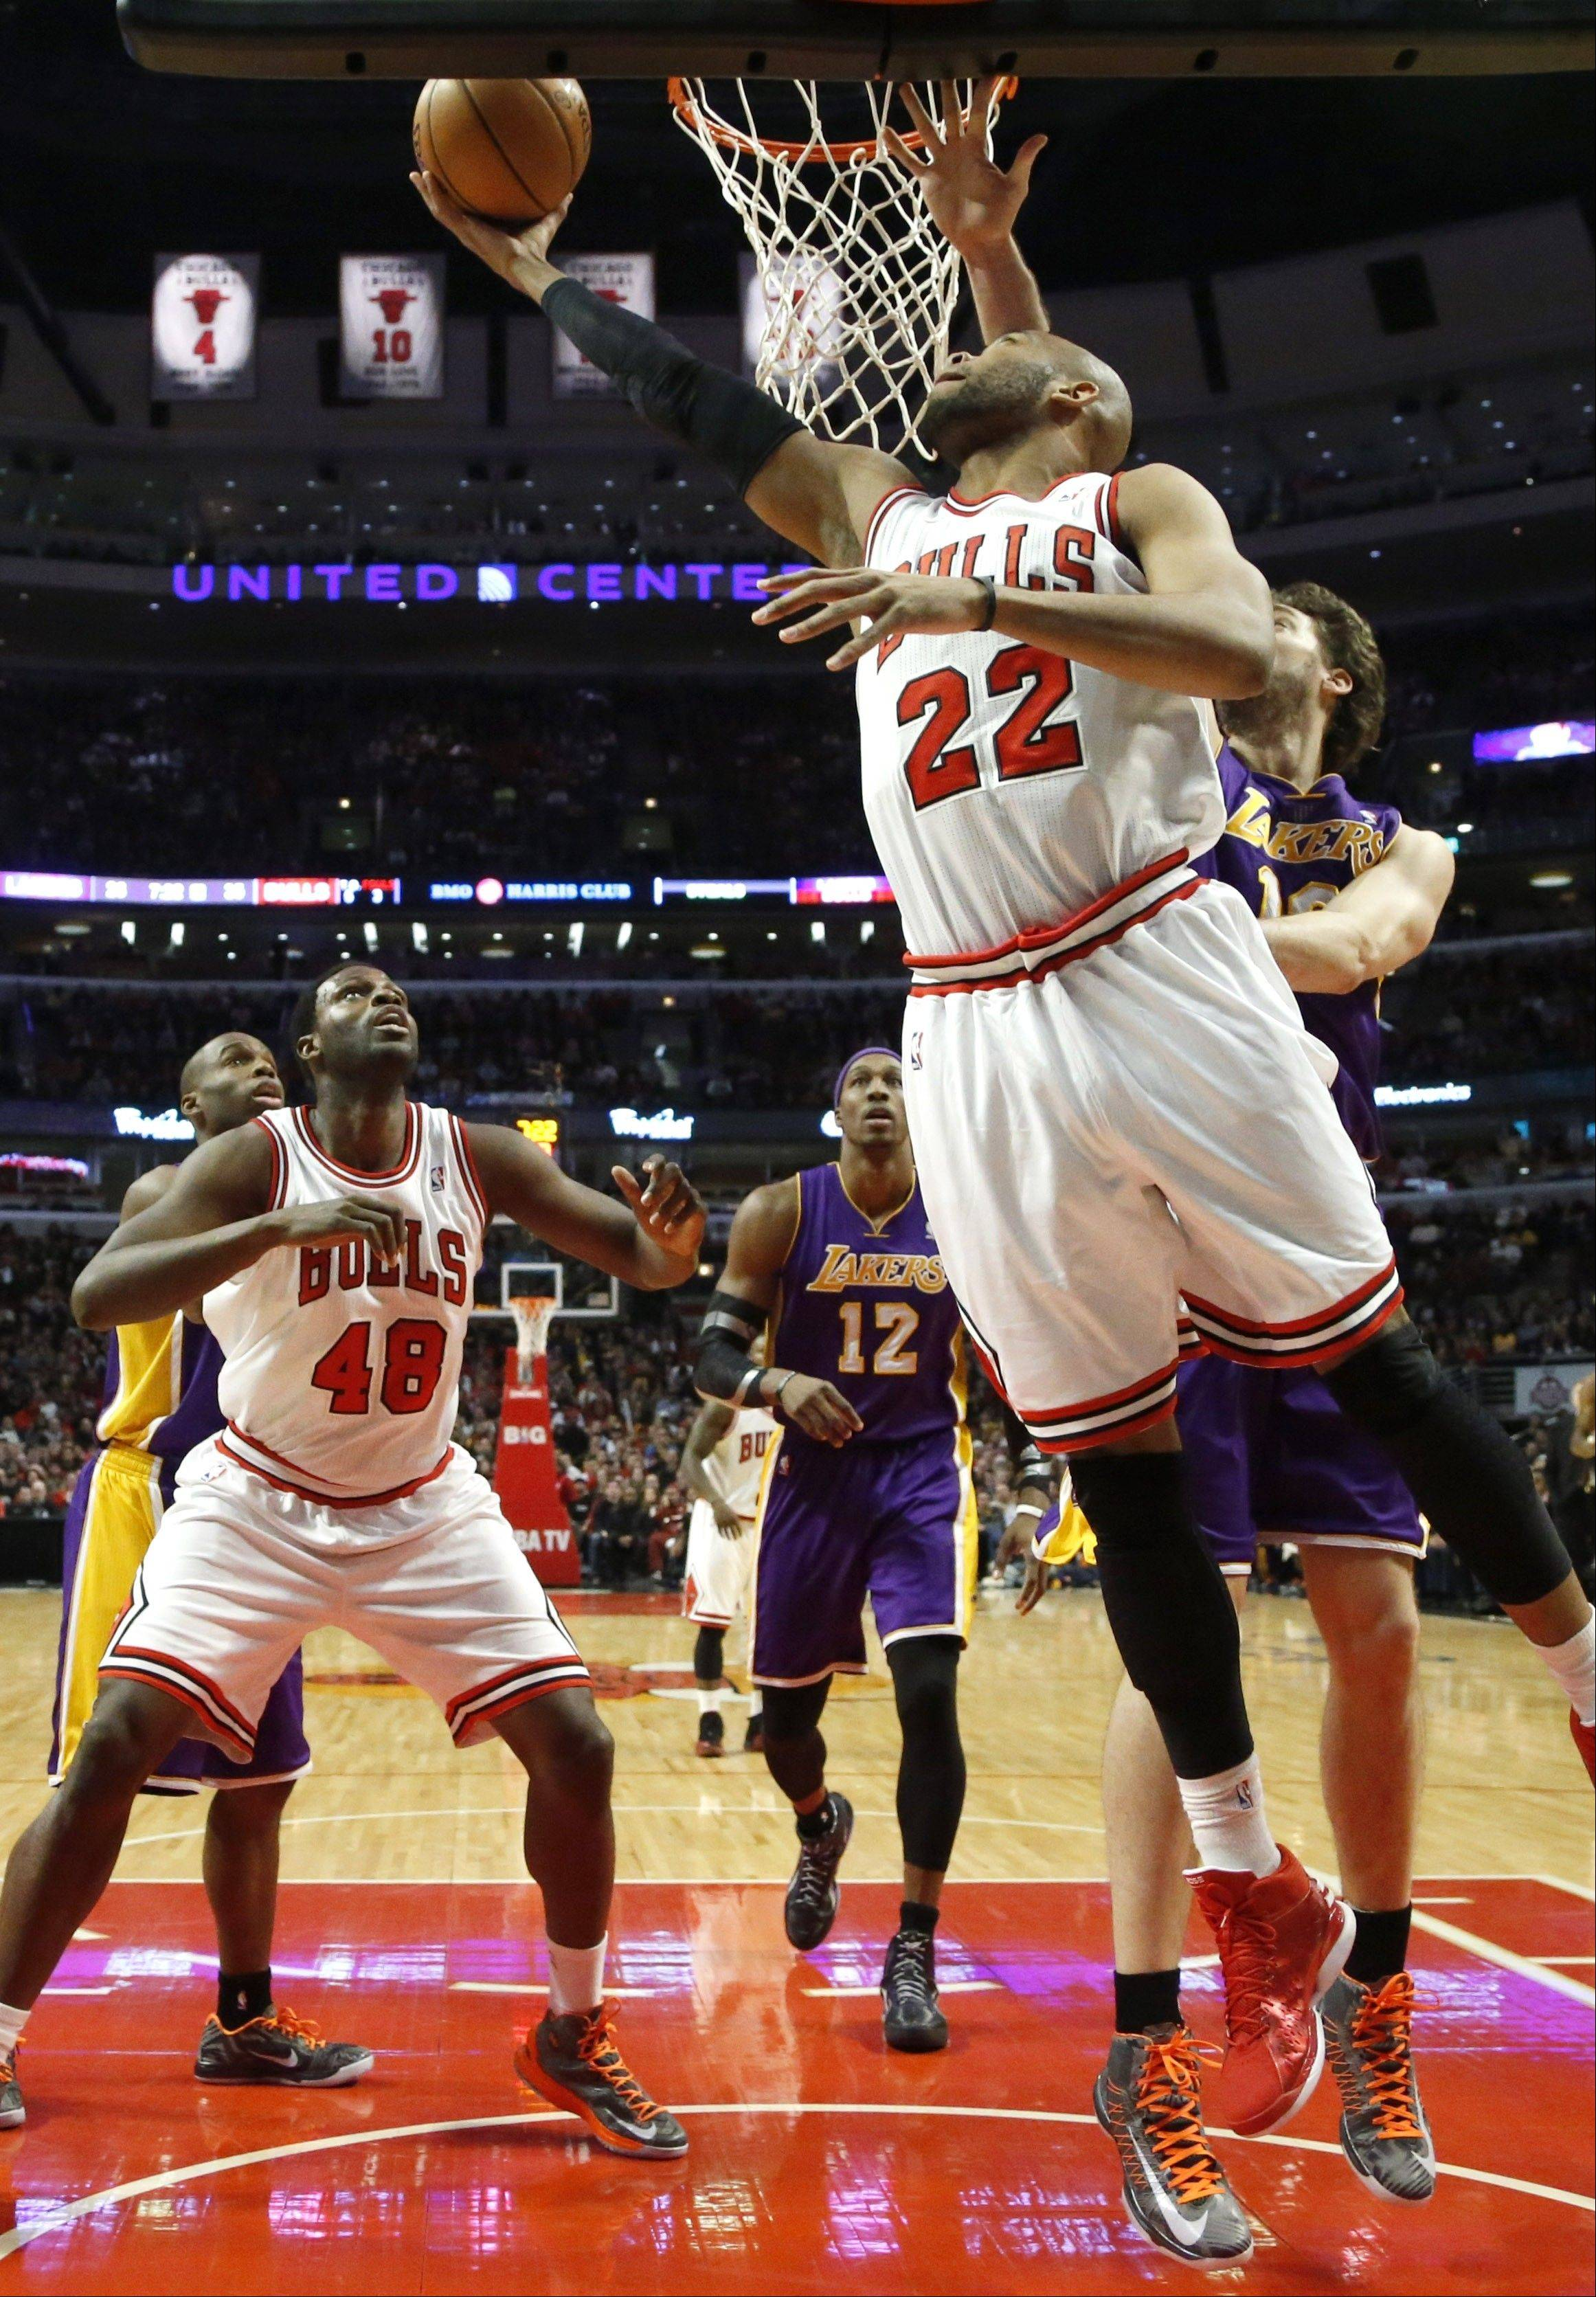 Bulls forward Taj Gibson shoots a reverse layup past the Lakers' Pau Gasol on Monday night at the United Center.